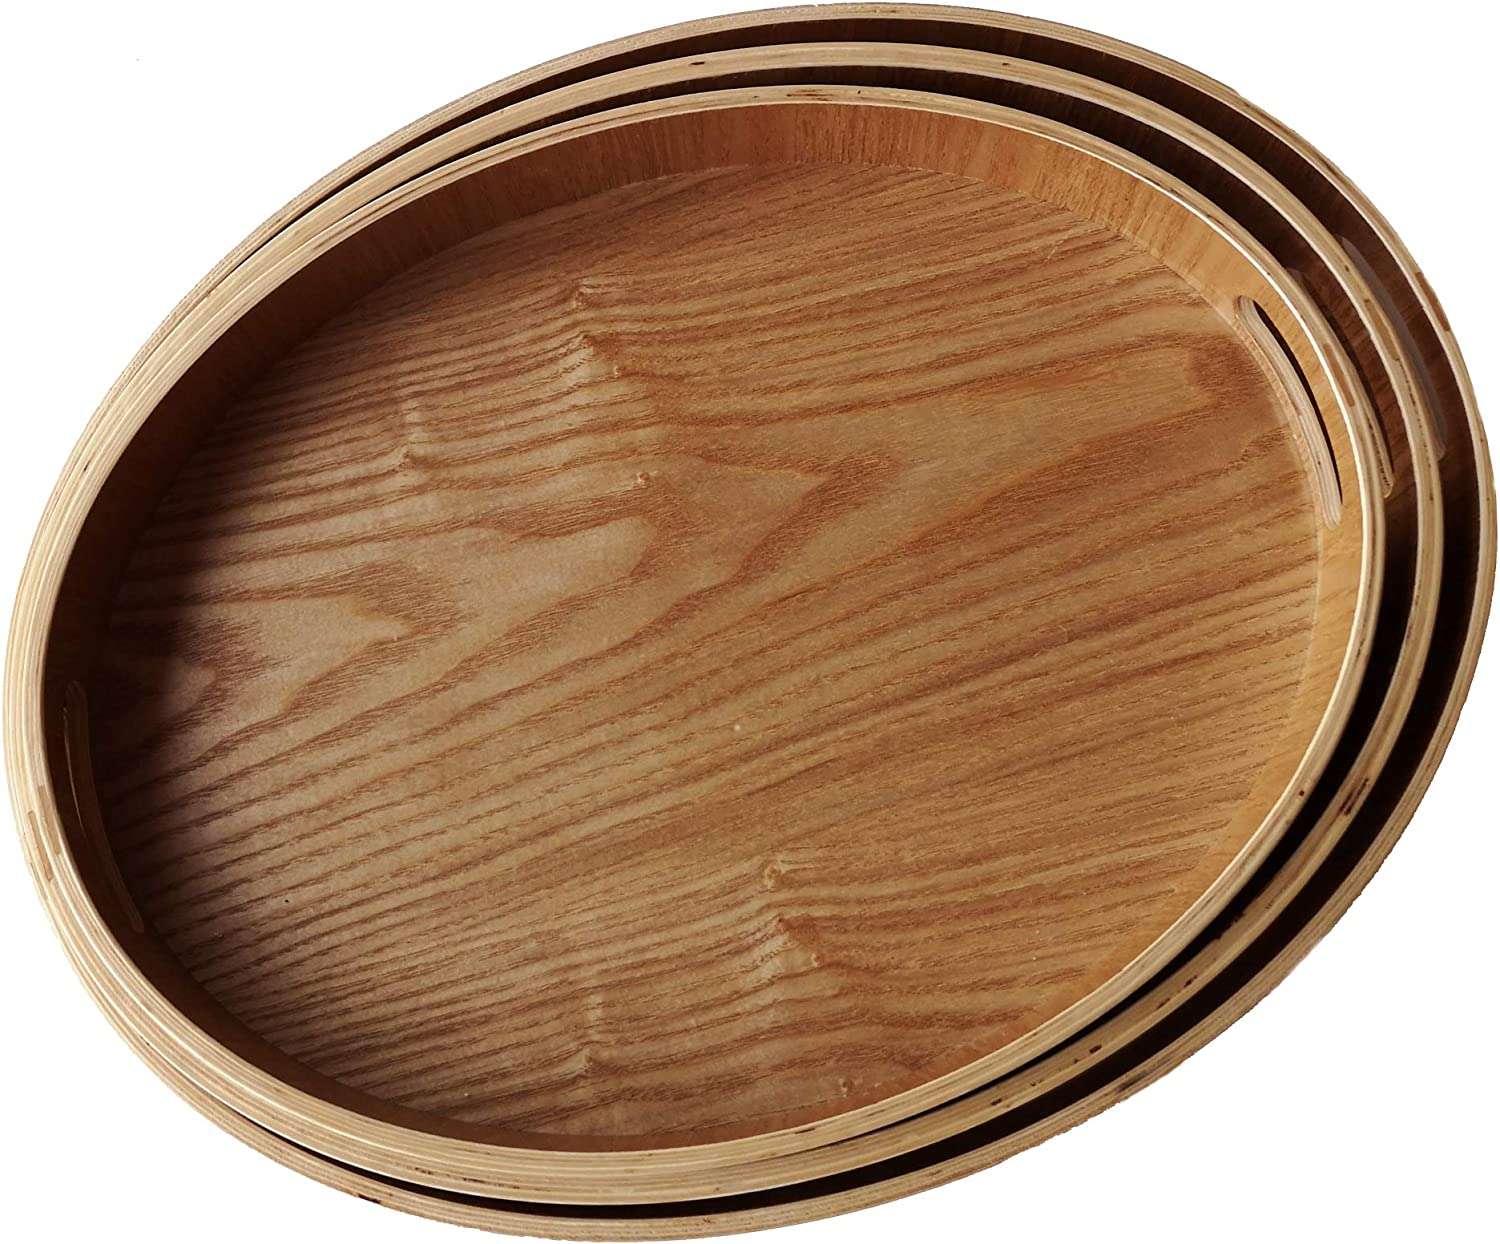 Set of 3 Large Wooden Serving Trays with Handles Nesting Breakfast Serving Trays Decorative Oval Wood Display Tray Set Nested Food Tray Butler Serving Tray for kitchen Party Dinner